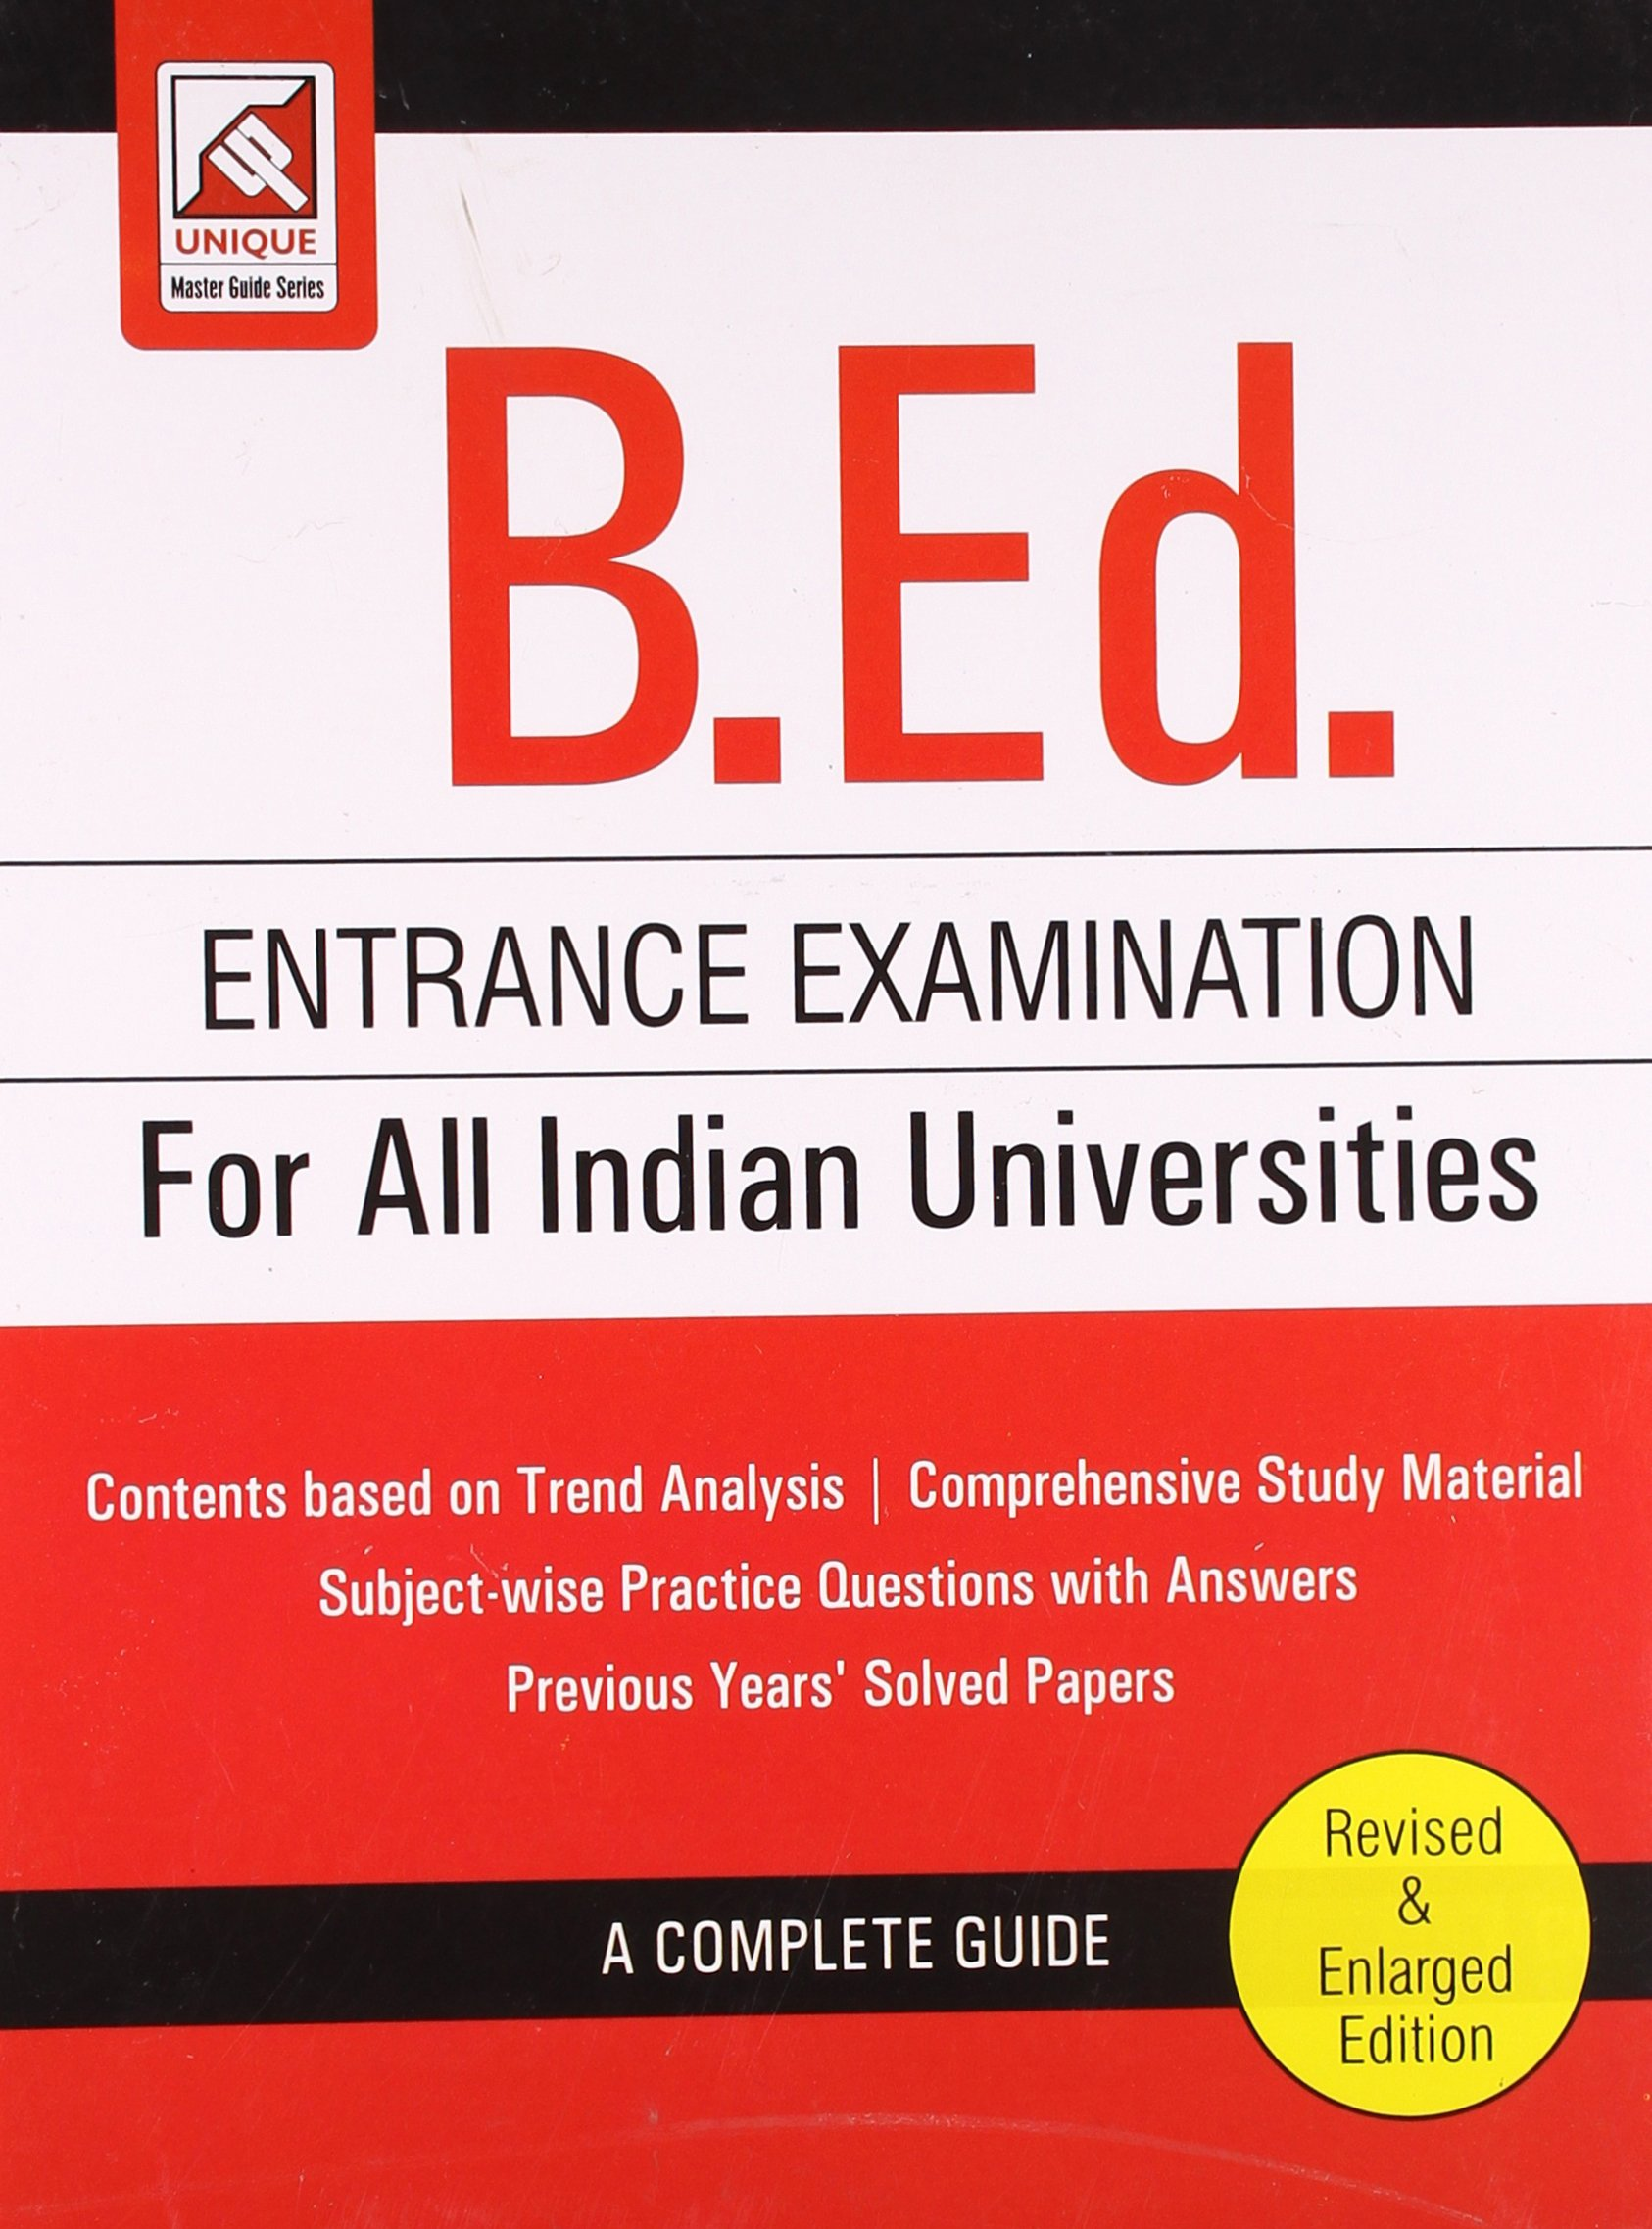 Buy bed entrance examination for all central universities book buy bed entrance examination for all central universities book online at low prices in india bed entrance examination for all central universities fandeluxe Gallery